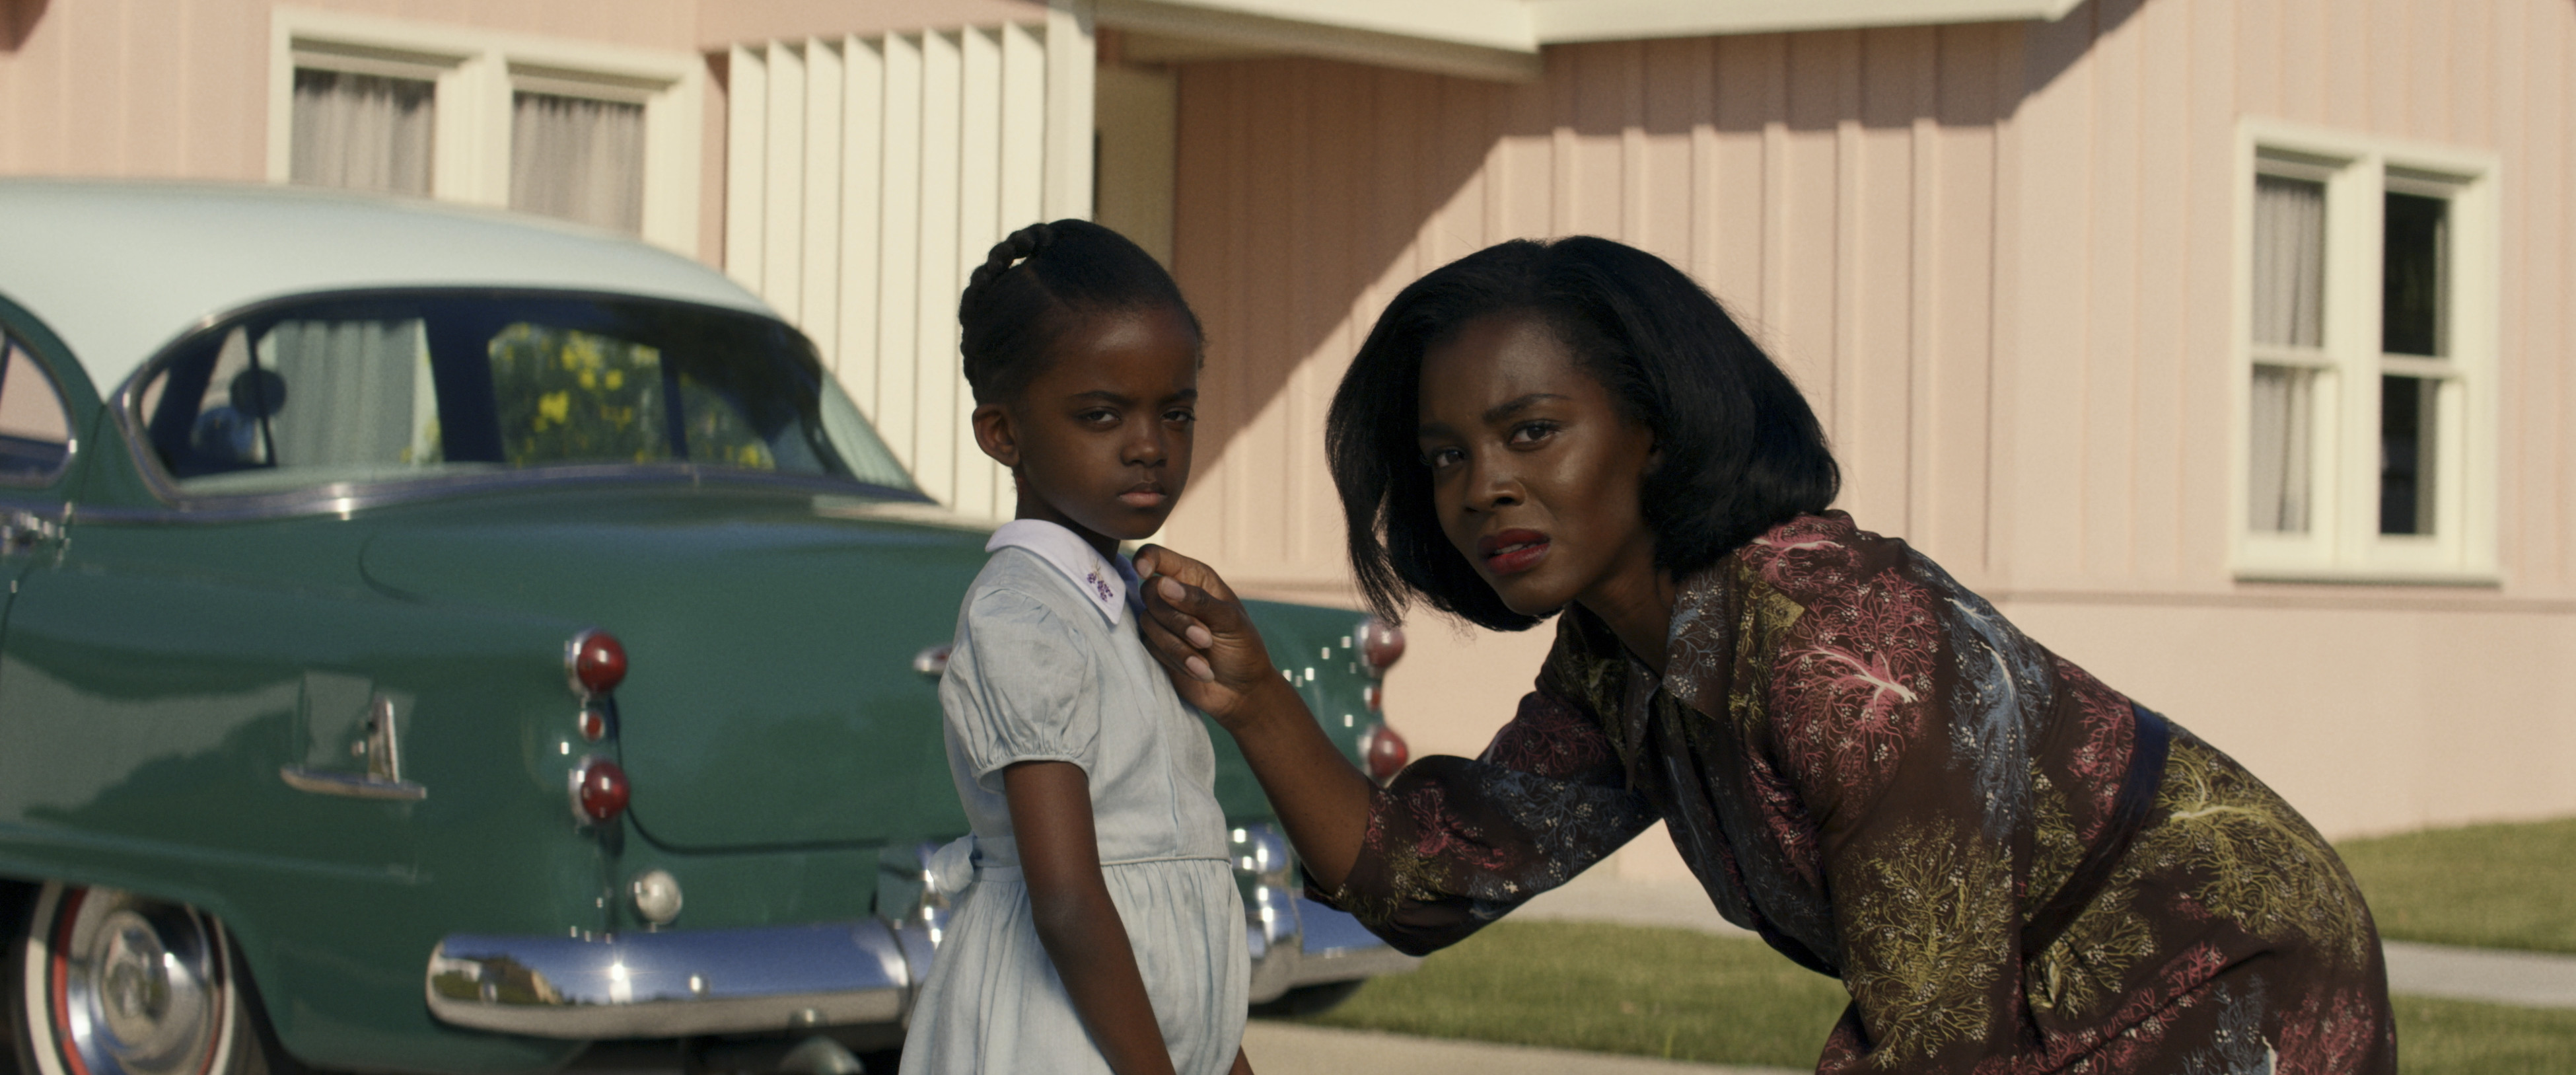 Deborah Ayorinde bends down to address her daughter, played by Melody Hurd, with a 1950s car in the background, in Amazon Studios' Them